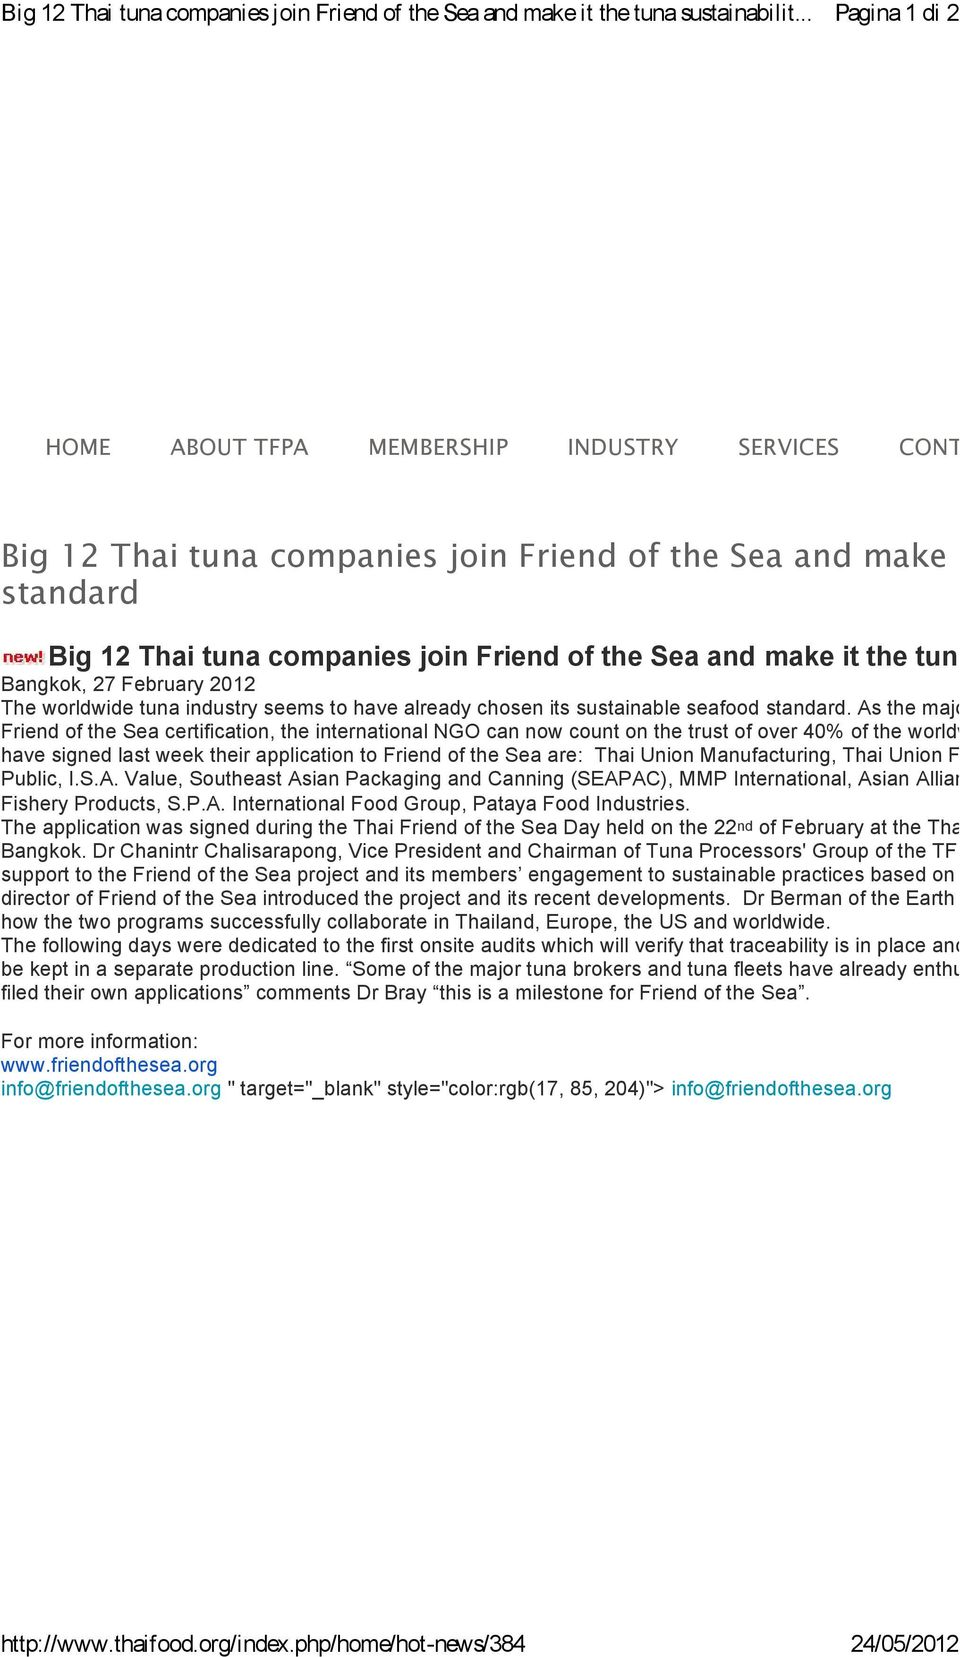 companies join Friend of the Sea and make it the tuna sustain Bangkok, 27 February 2012 The worldwide tuna industry seems to have already chosen its sustainable seafood standard.